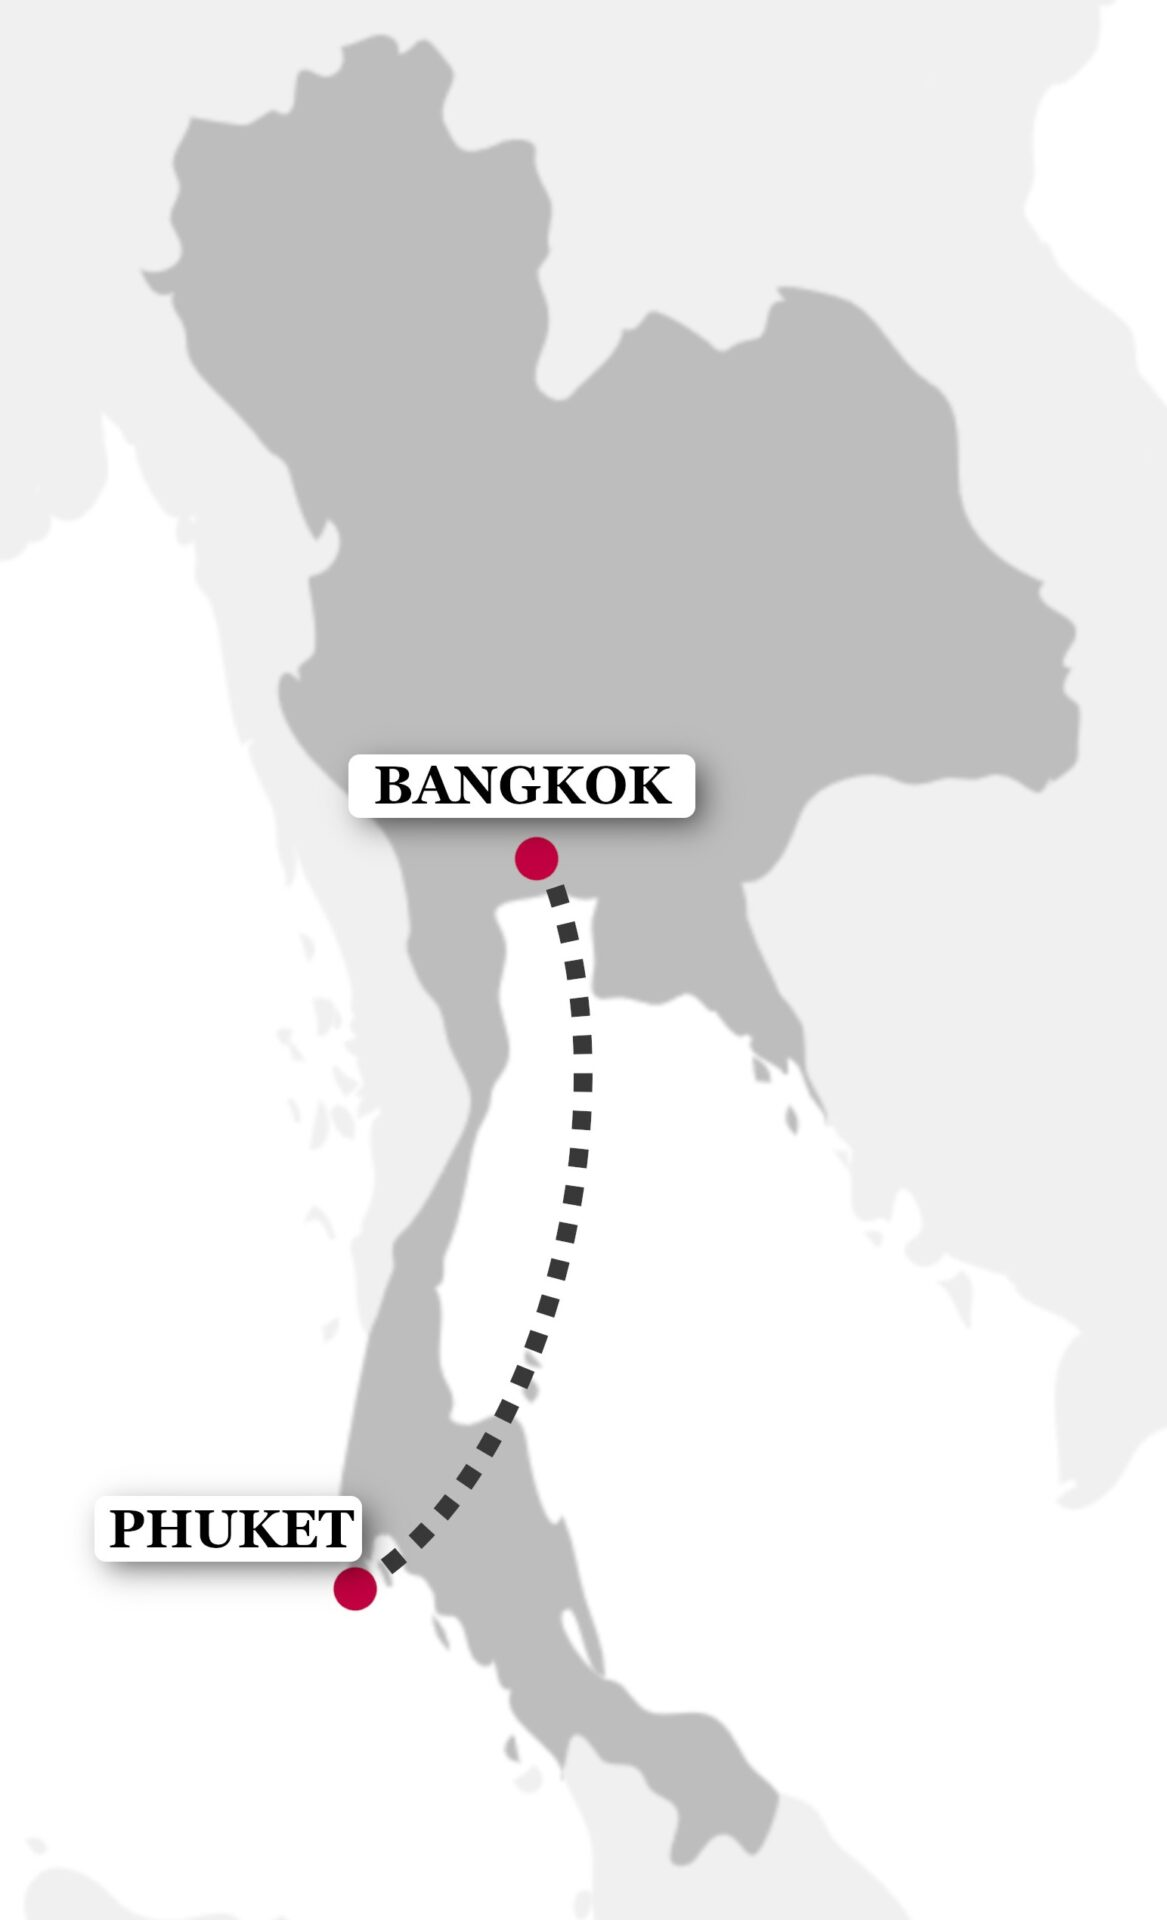 Bangkok & Phuket Tour Map